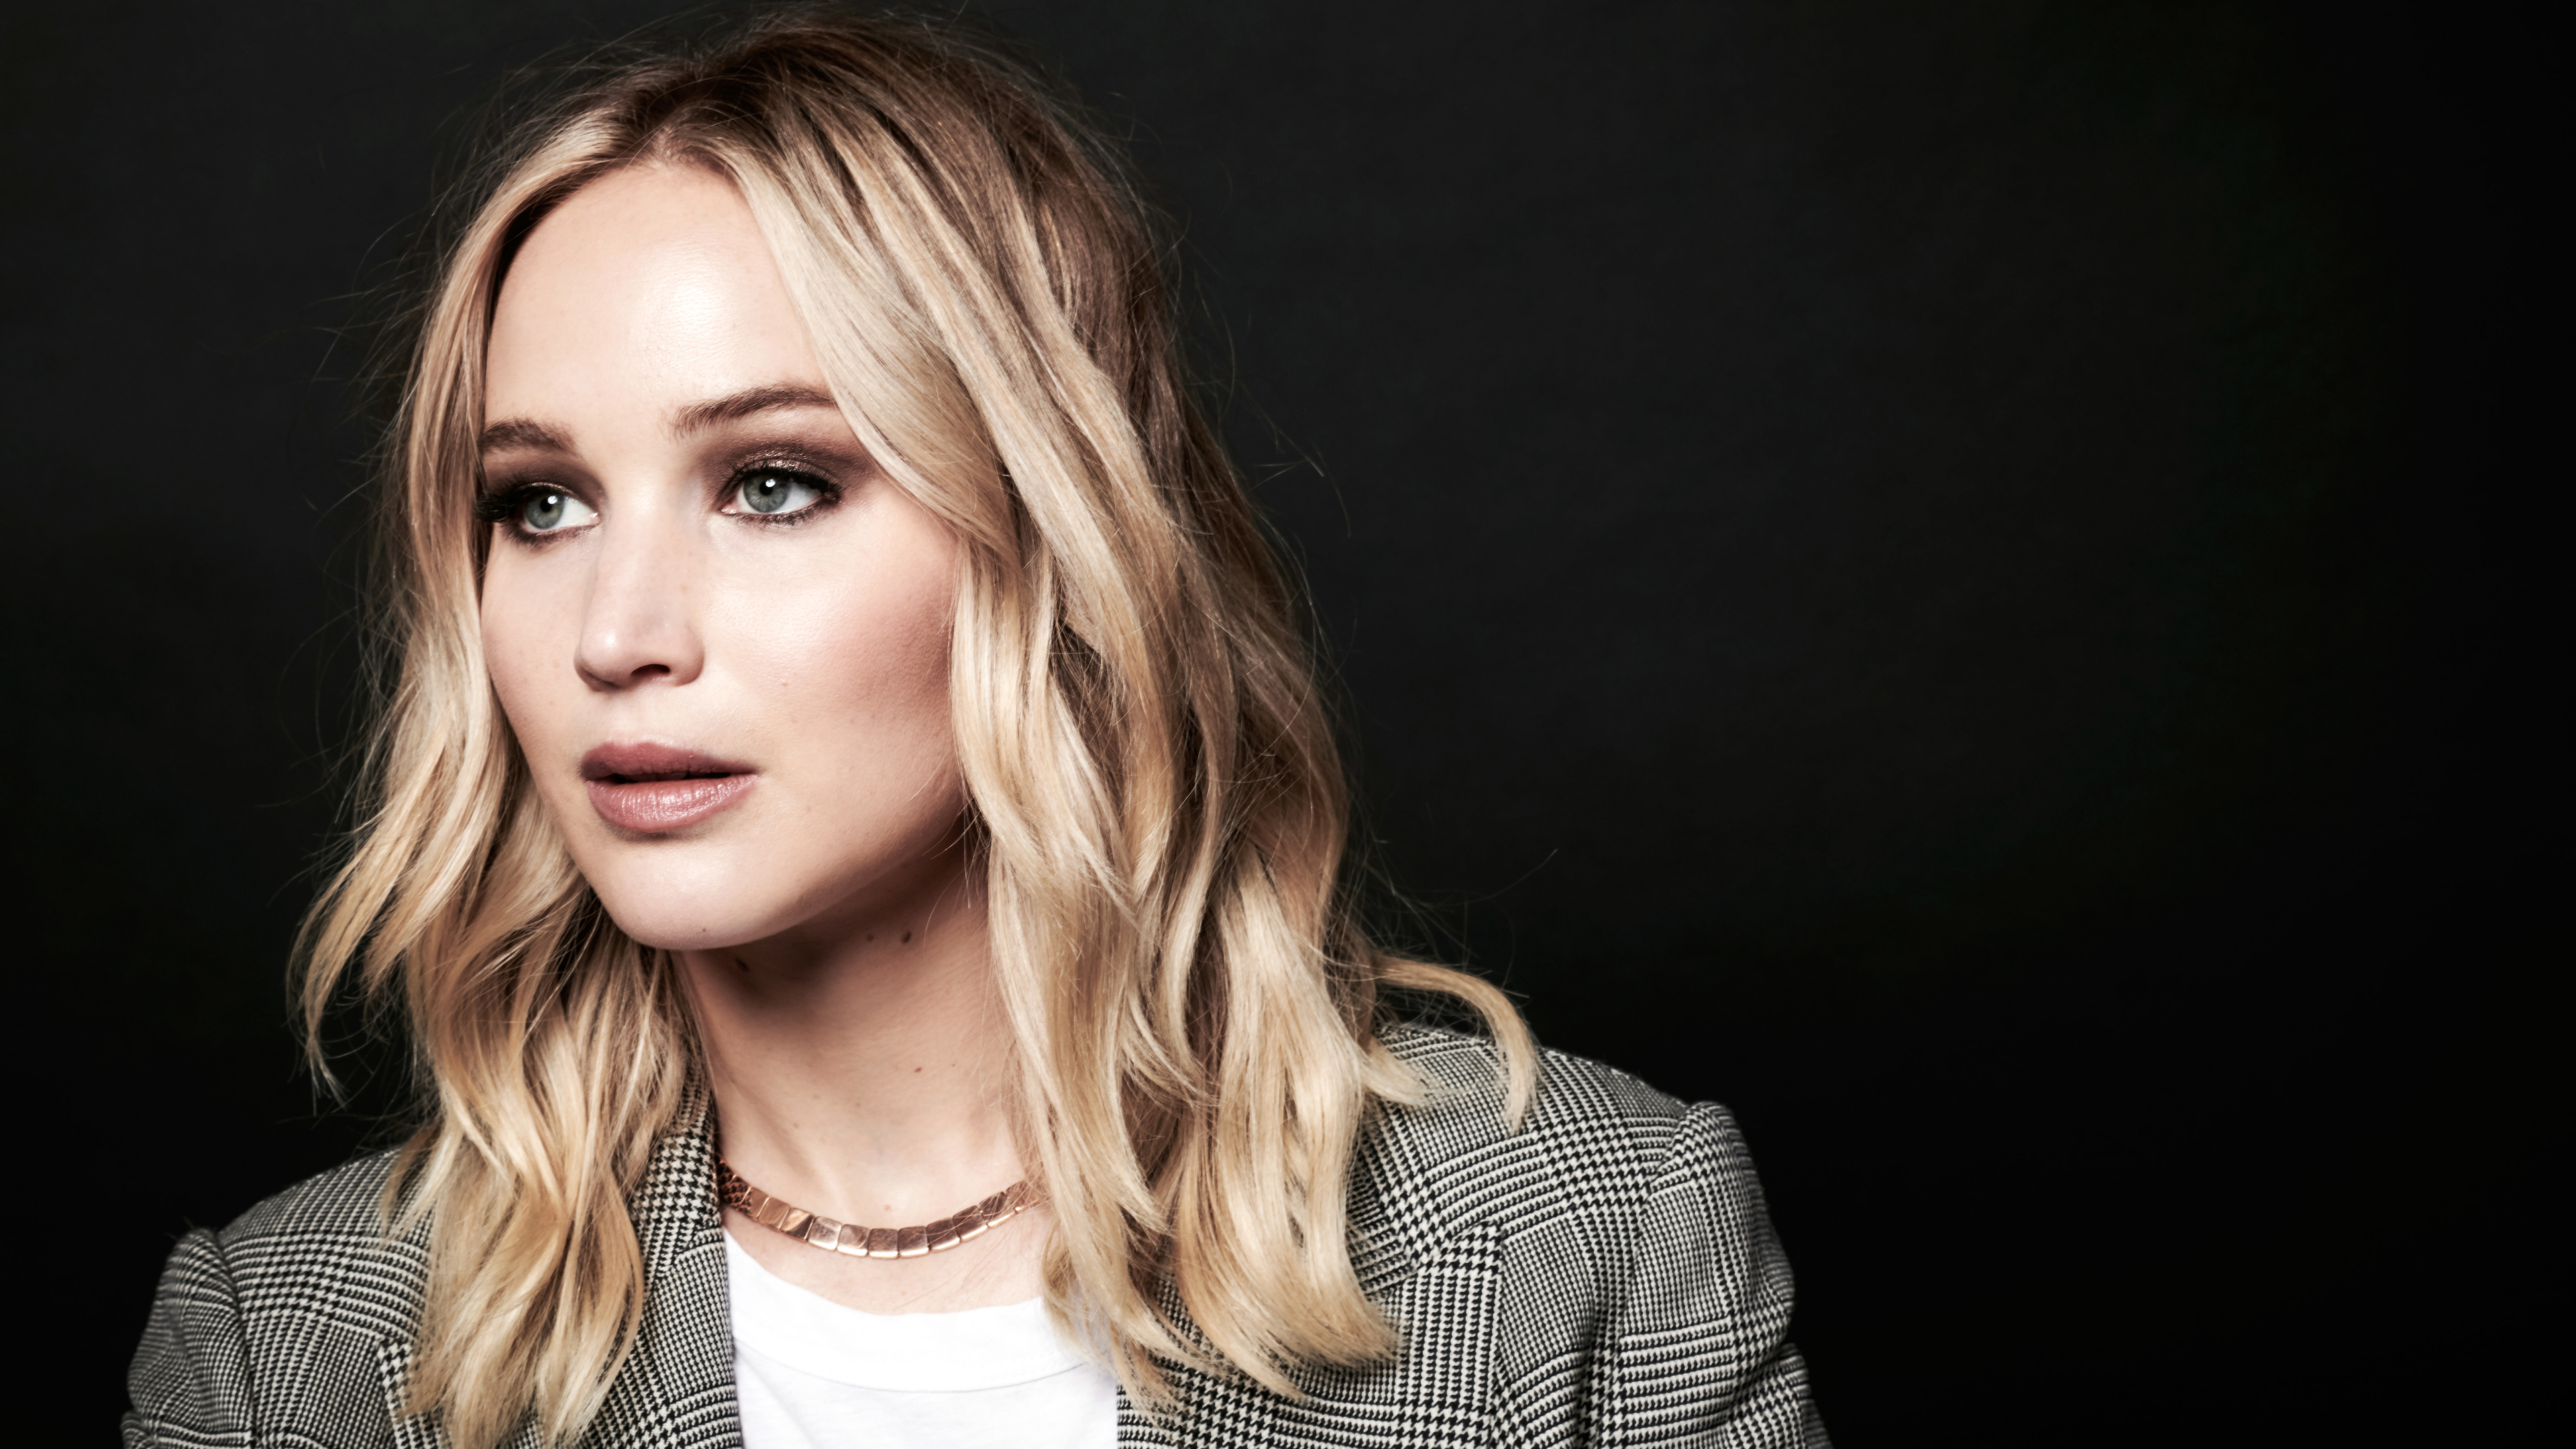 8k jennifer lawrence 1536862178 - 8k Jennifer Lawrence - jennifer lawrence wallpapers, hd-wallpapers, girls wallpapers, celebrities wallpapers, 8k wallpapers, 5k wallpapers, 4k-wallpapers